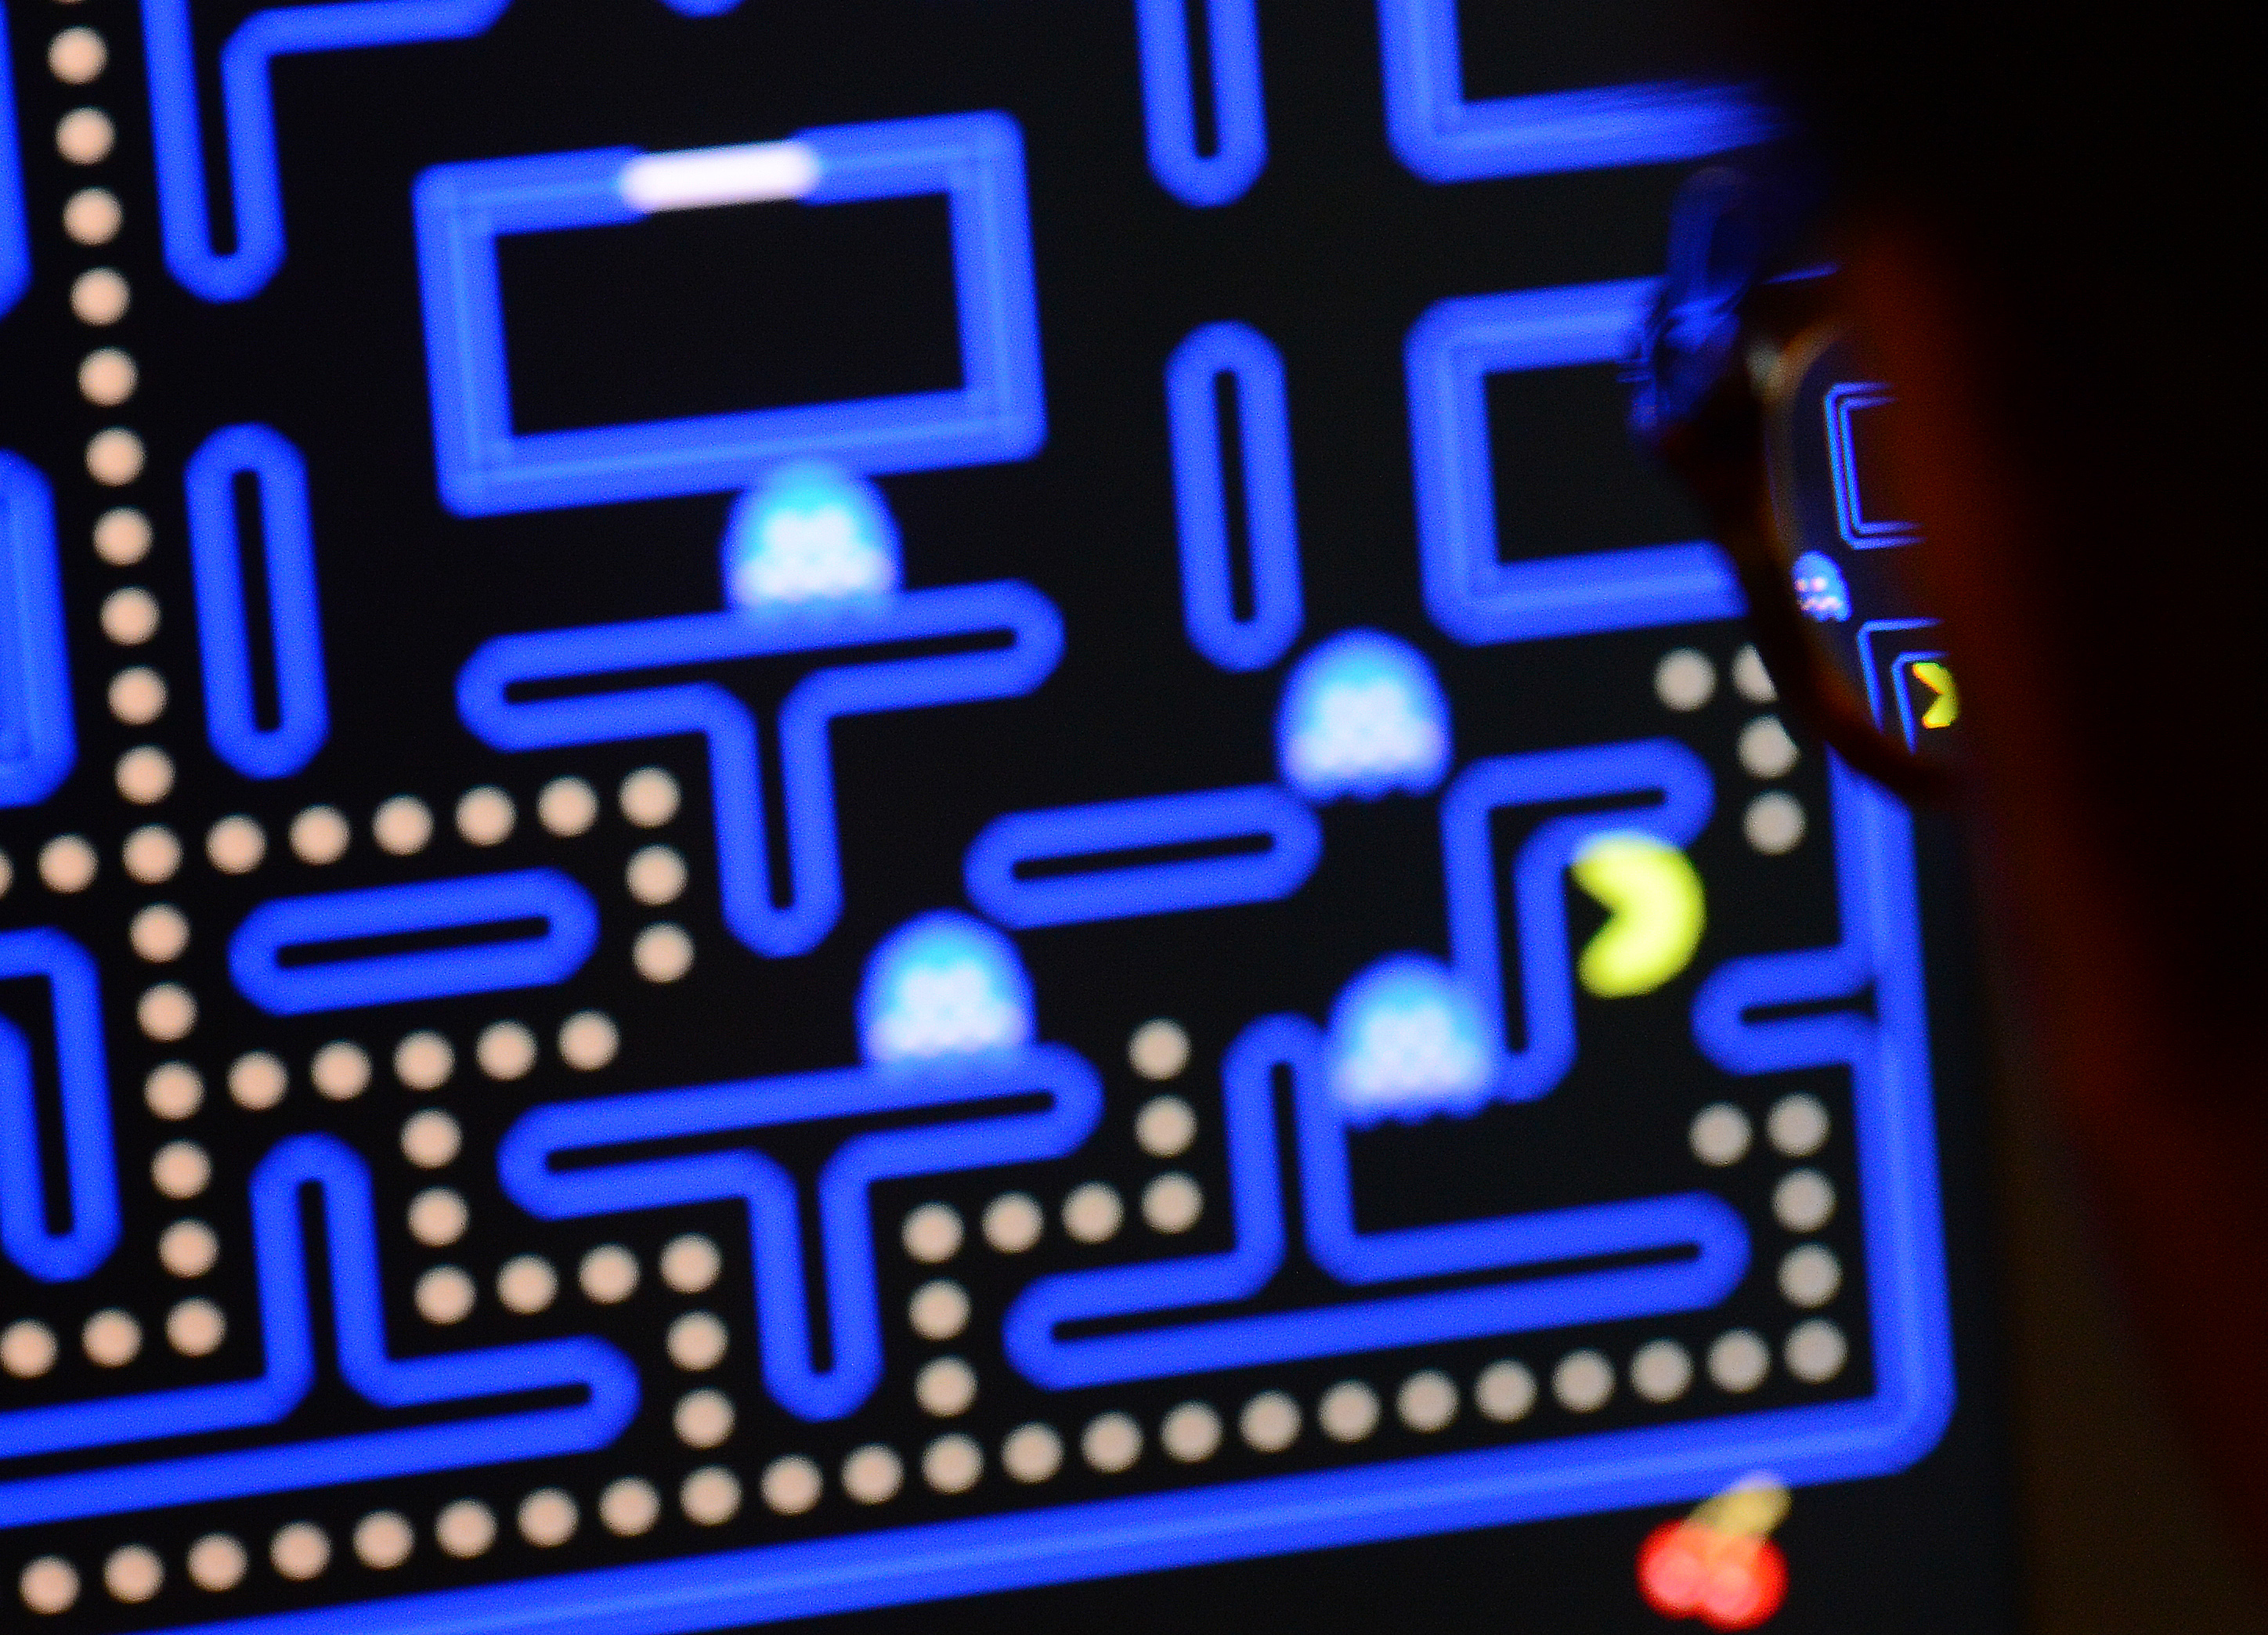 An employee plays the video game Pac-Man (1980) during an exhibition preview featuring 14 video games acquired by The Museum of Modern Art (MoMA)  in New York, March 1, 2013.